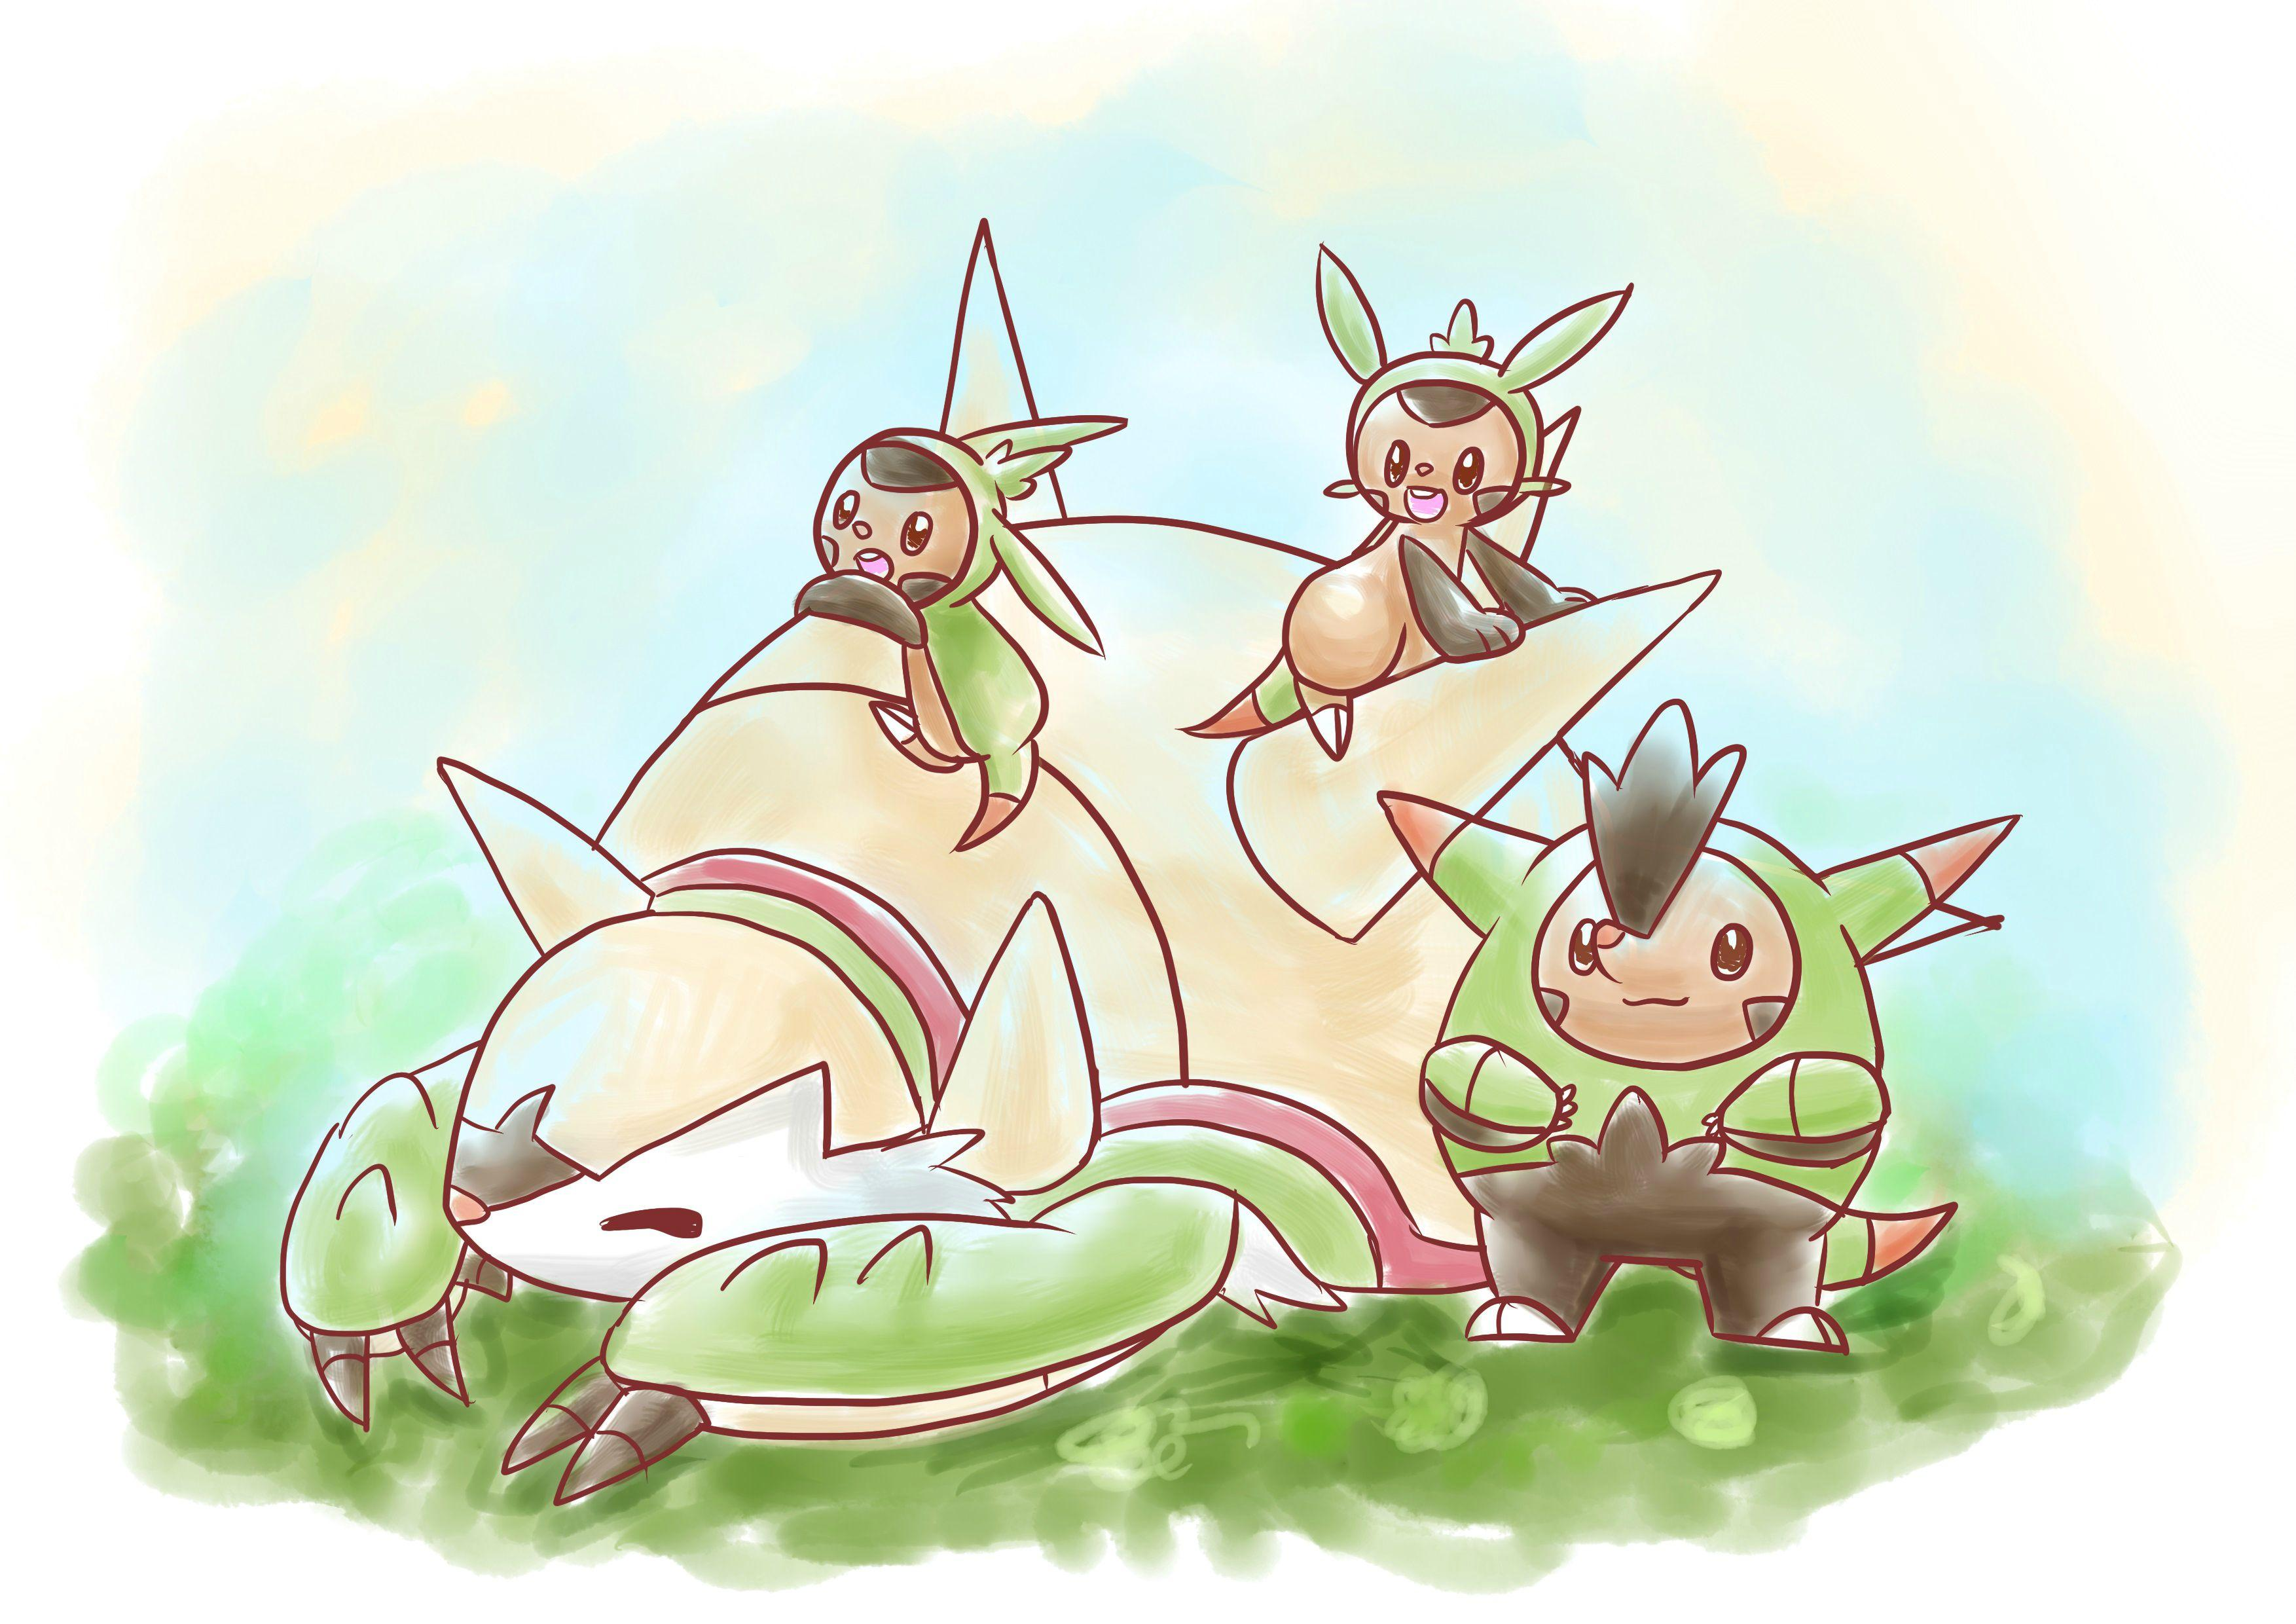 Adorable Chesnaught fanart